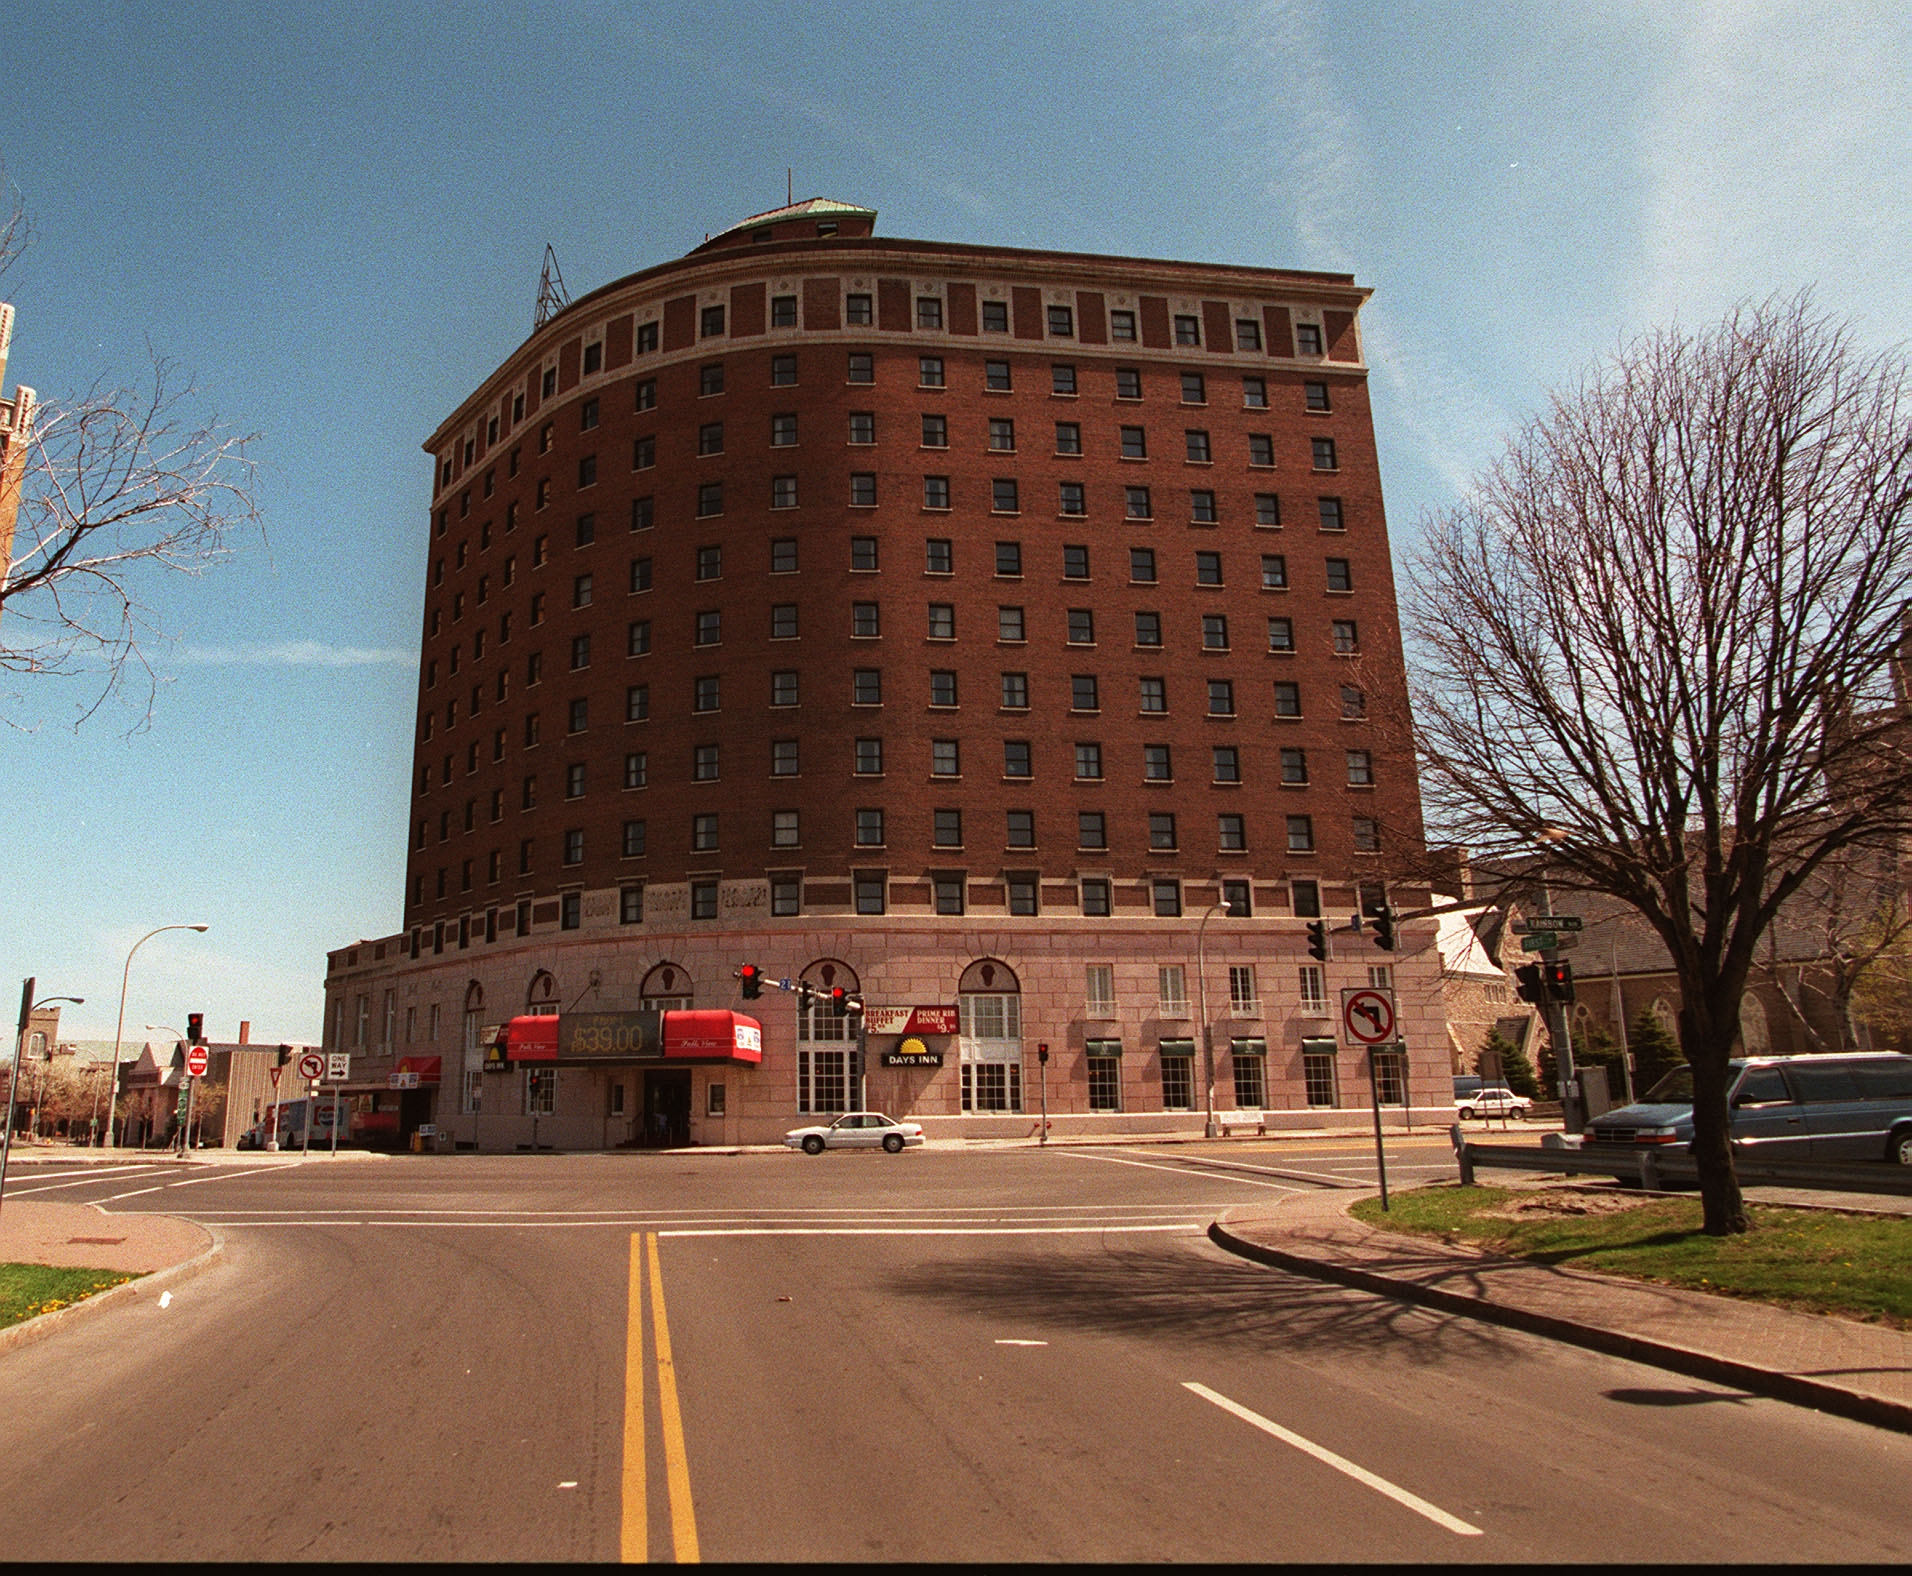 The vacant Hotel Niagara in downtown Niagara Falls will be turned into a Radisson hotel under a $21.5 million makeover plan by Reception Hotels and Resorts.